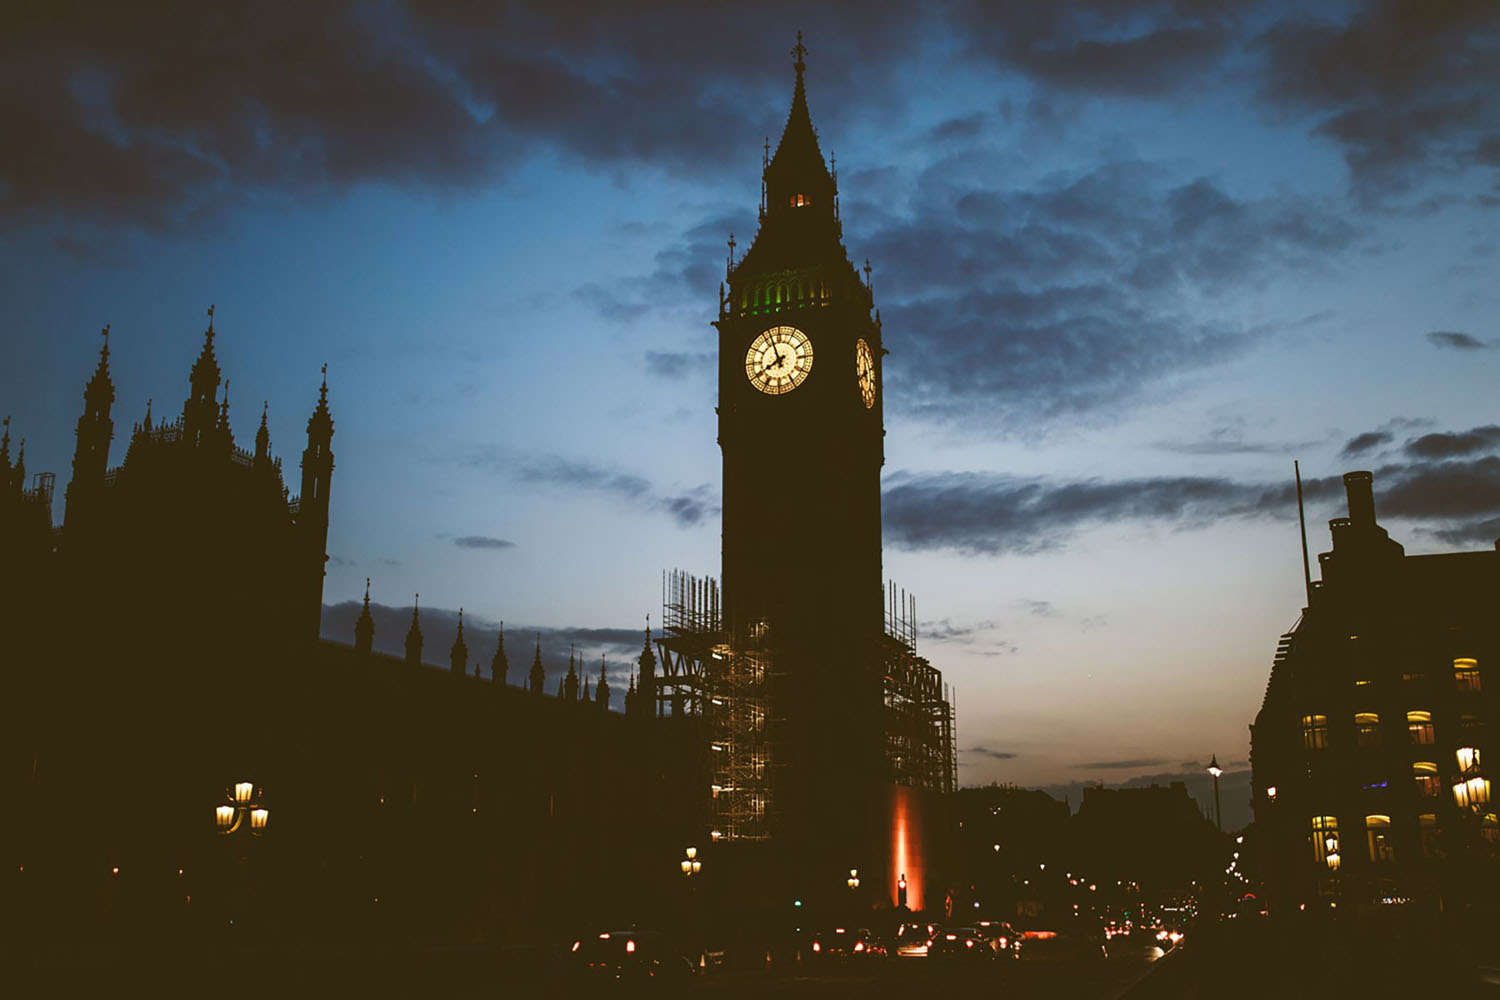 A spooky, nighttime image of Big Ben in London.